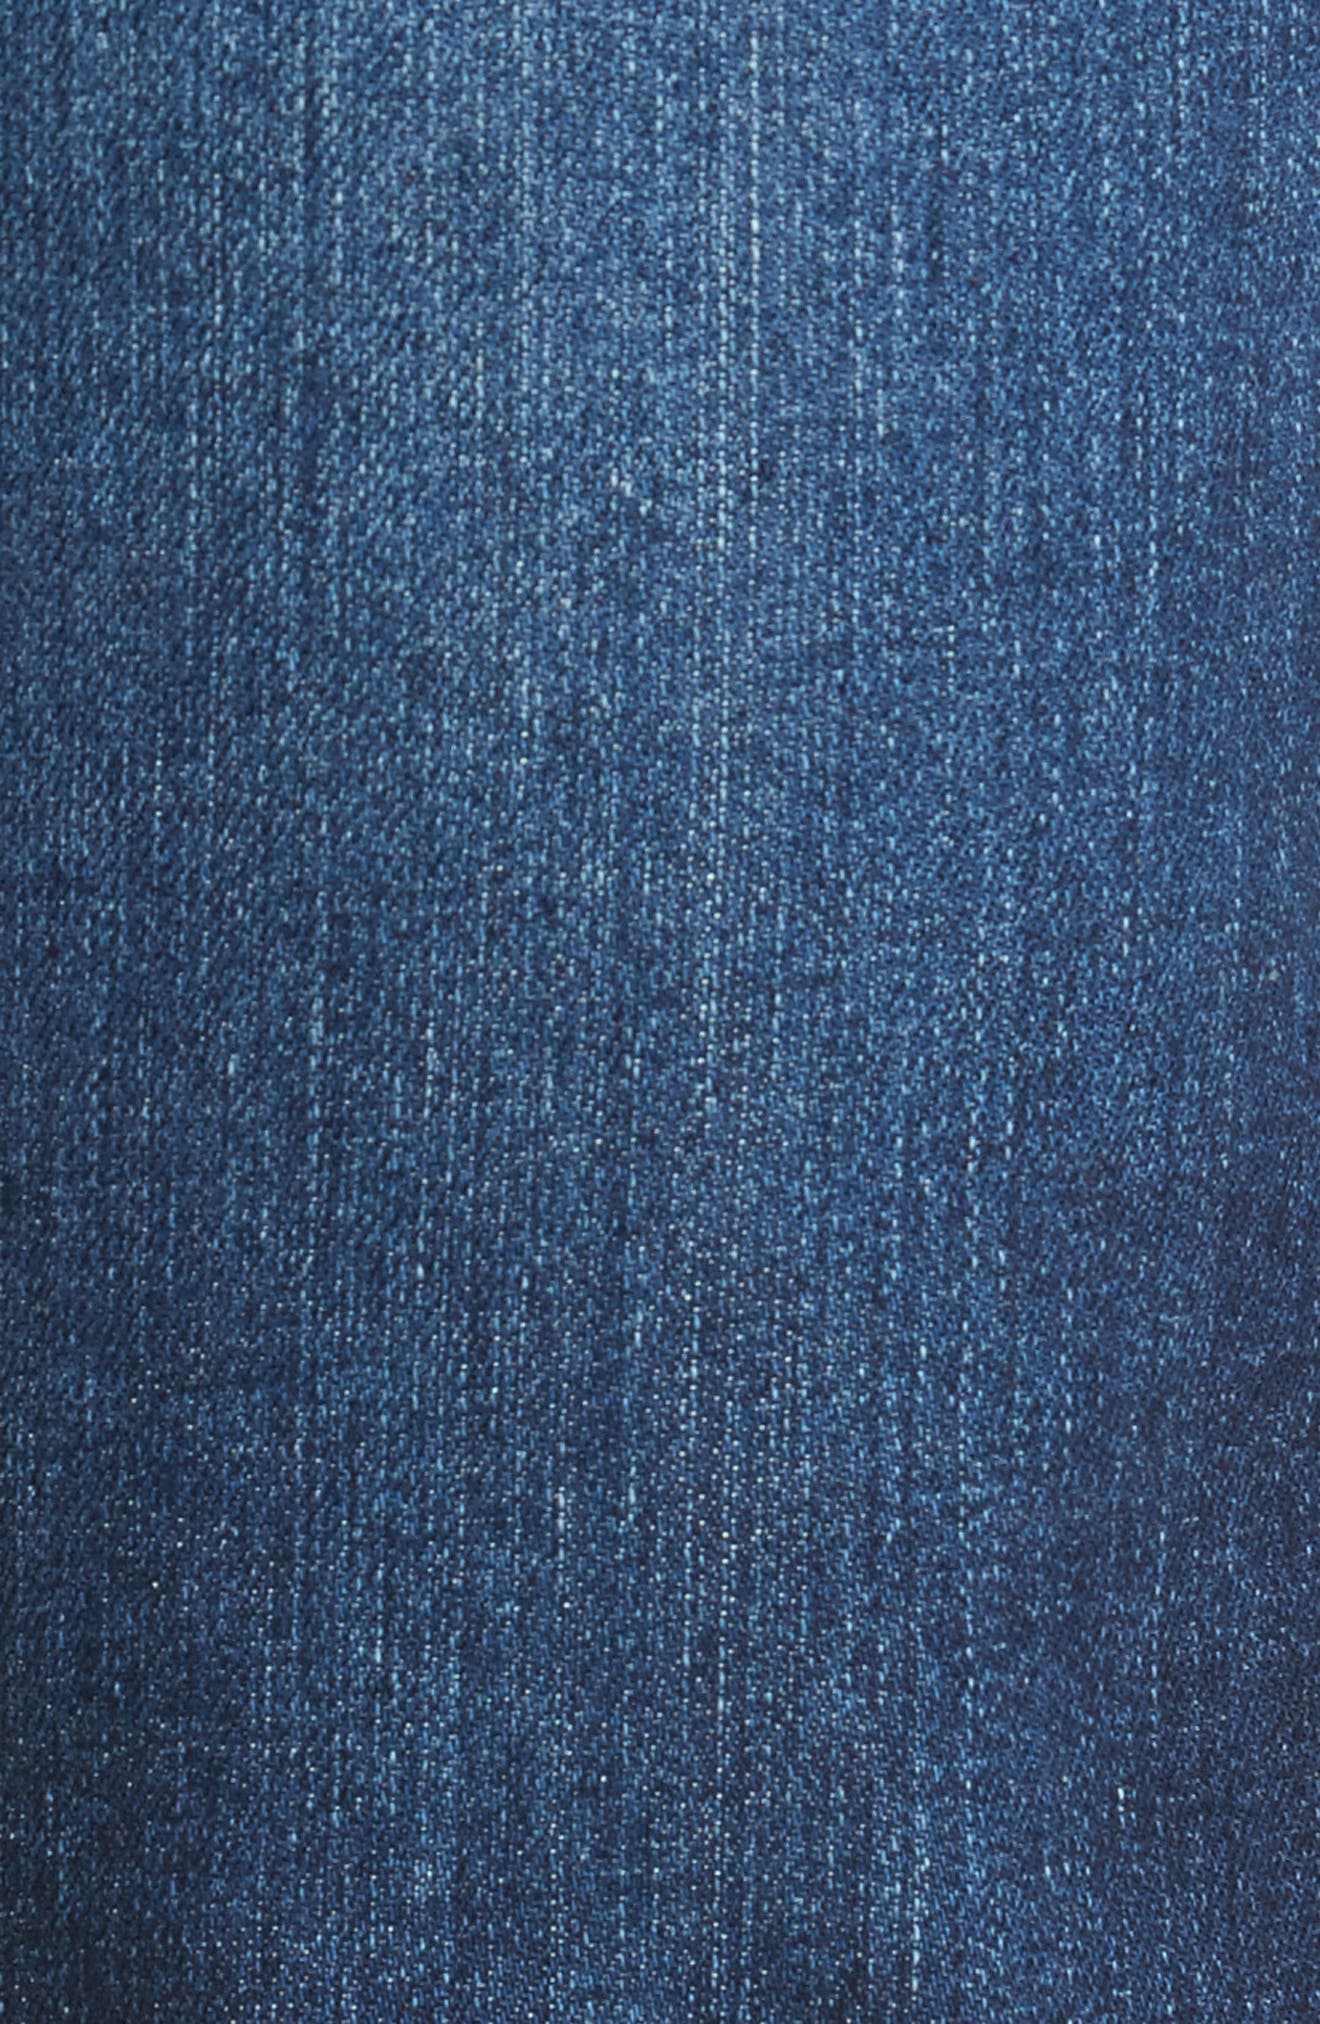 Stockton Skinny Fit Jeans,                             Alternate thumbnail 5, color,                             7 Years Blue Spire